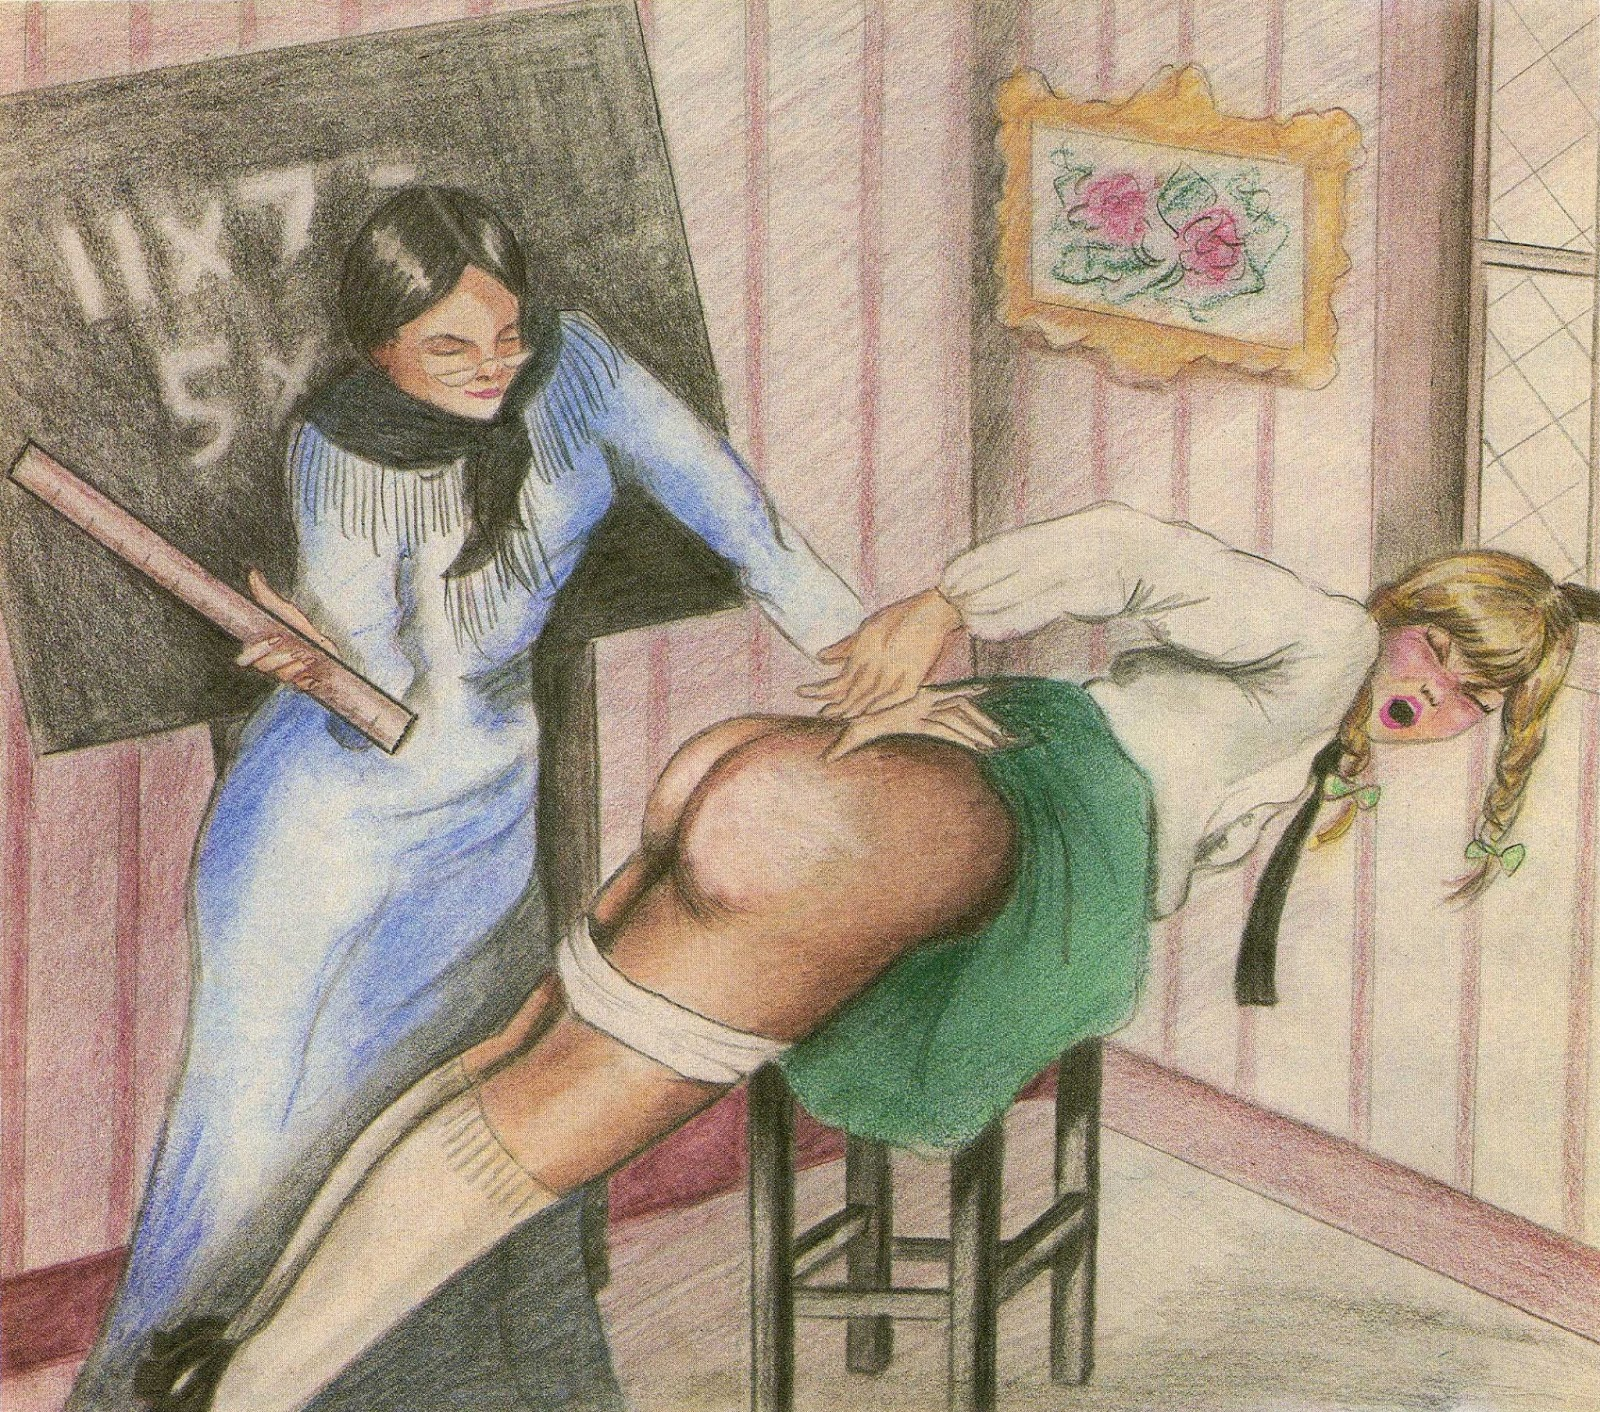 Spanked girl video non pornographic